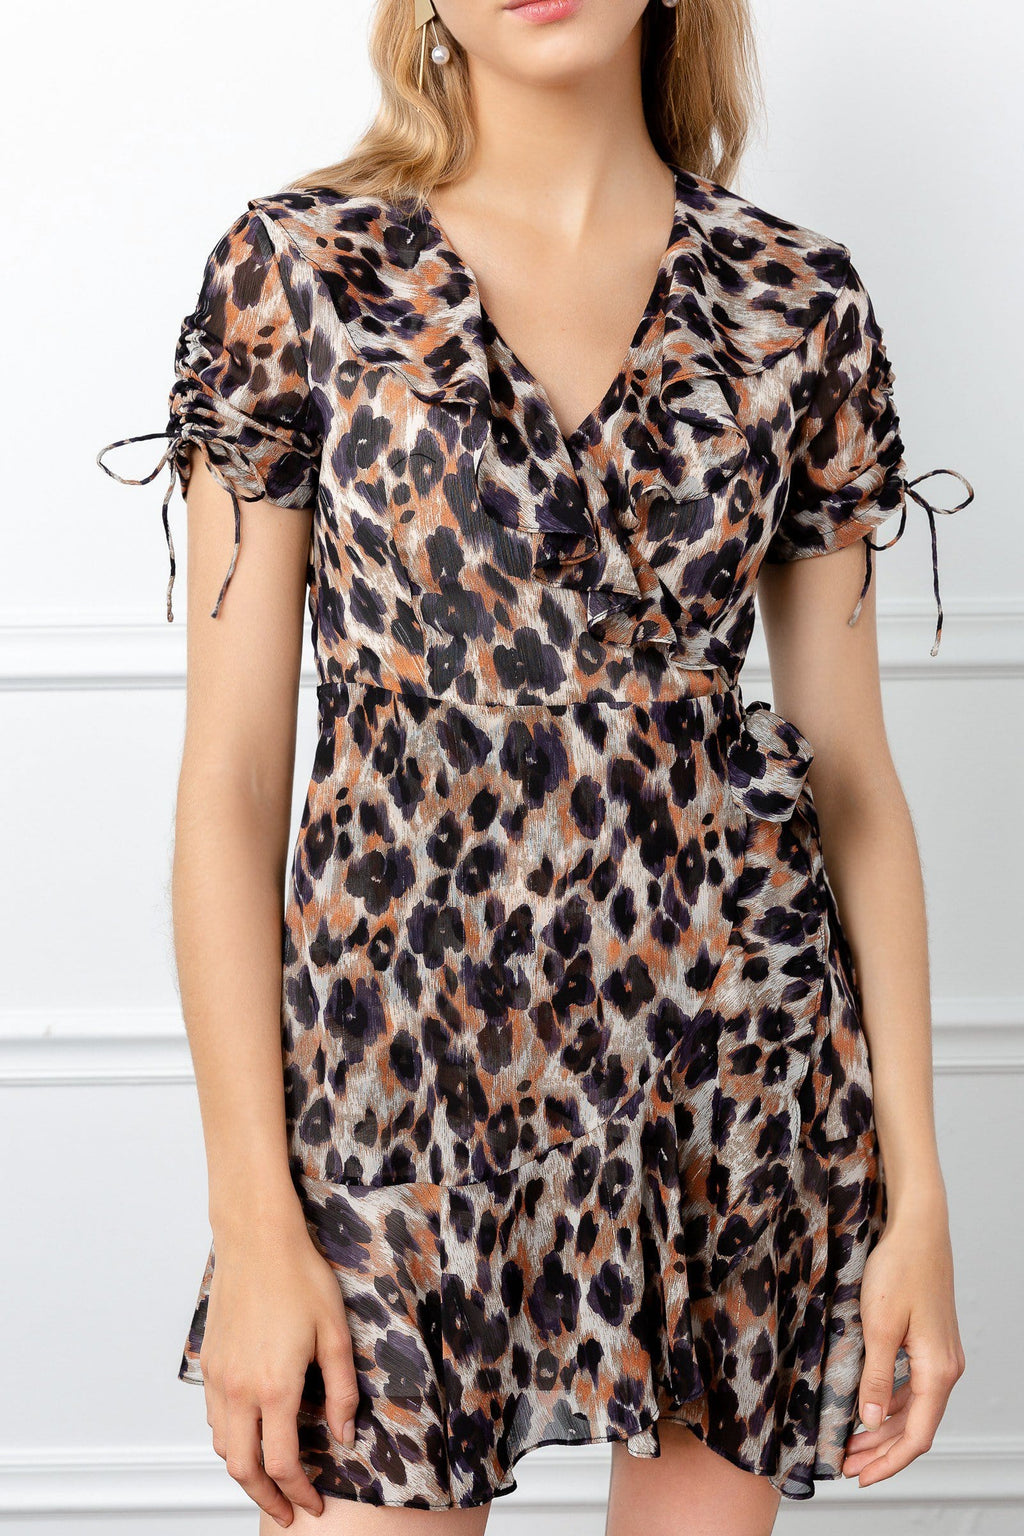 Leopard Dress wildcat by J.ING short sleeves